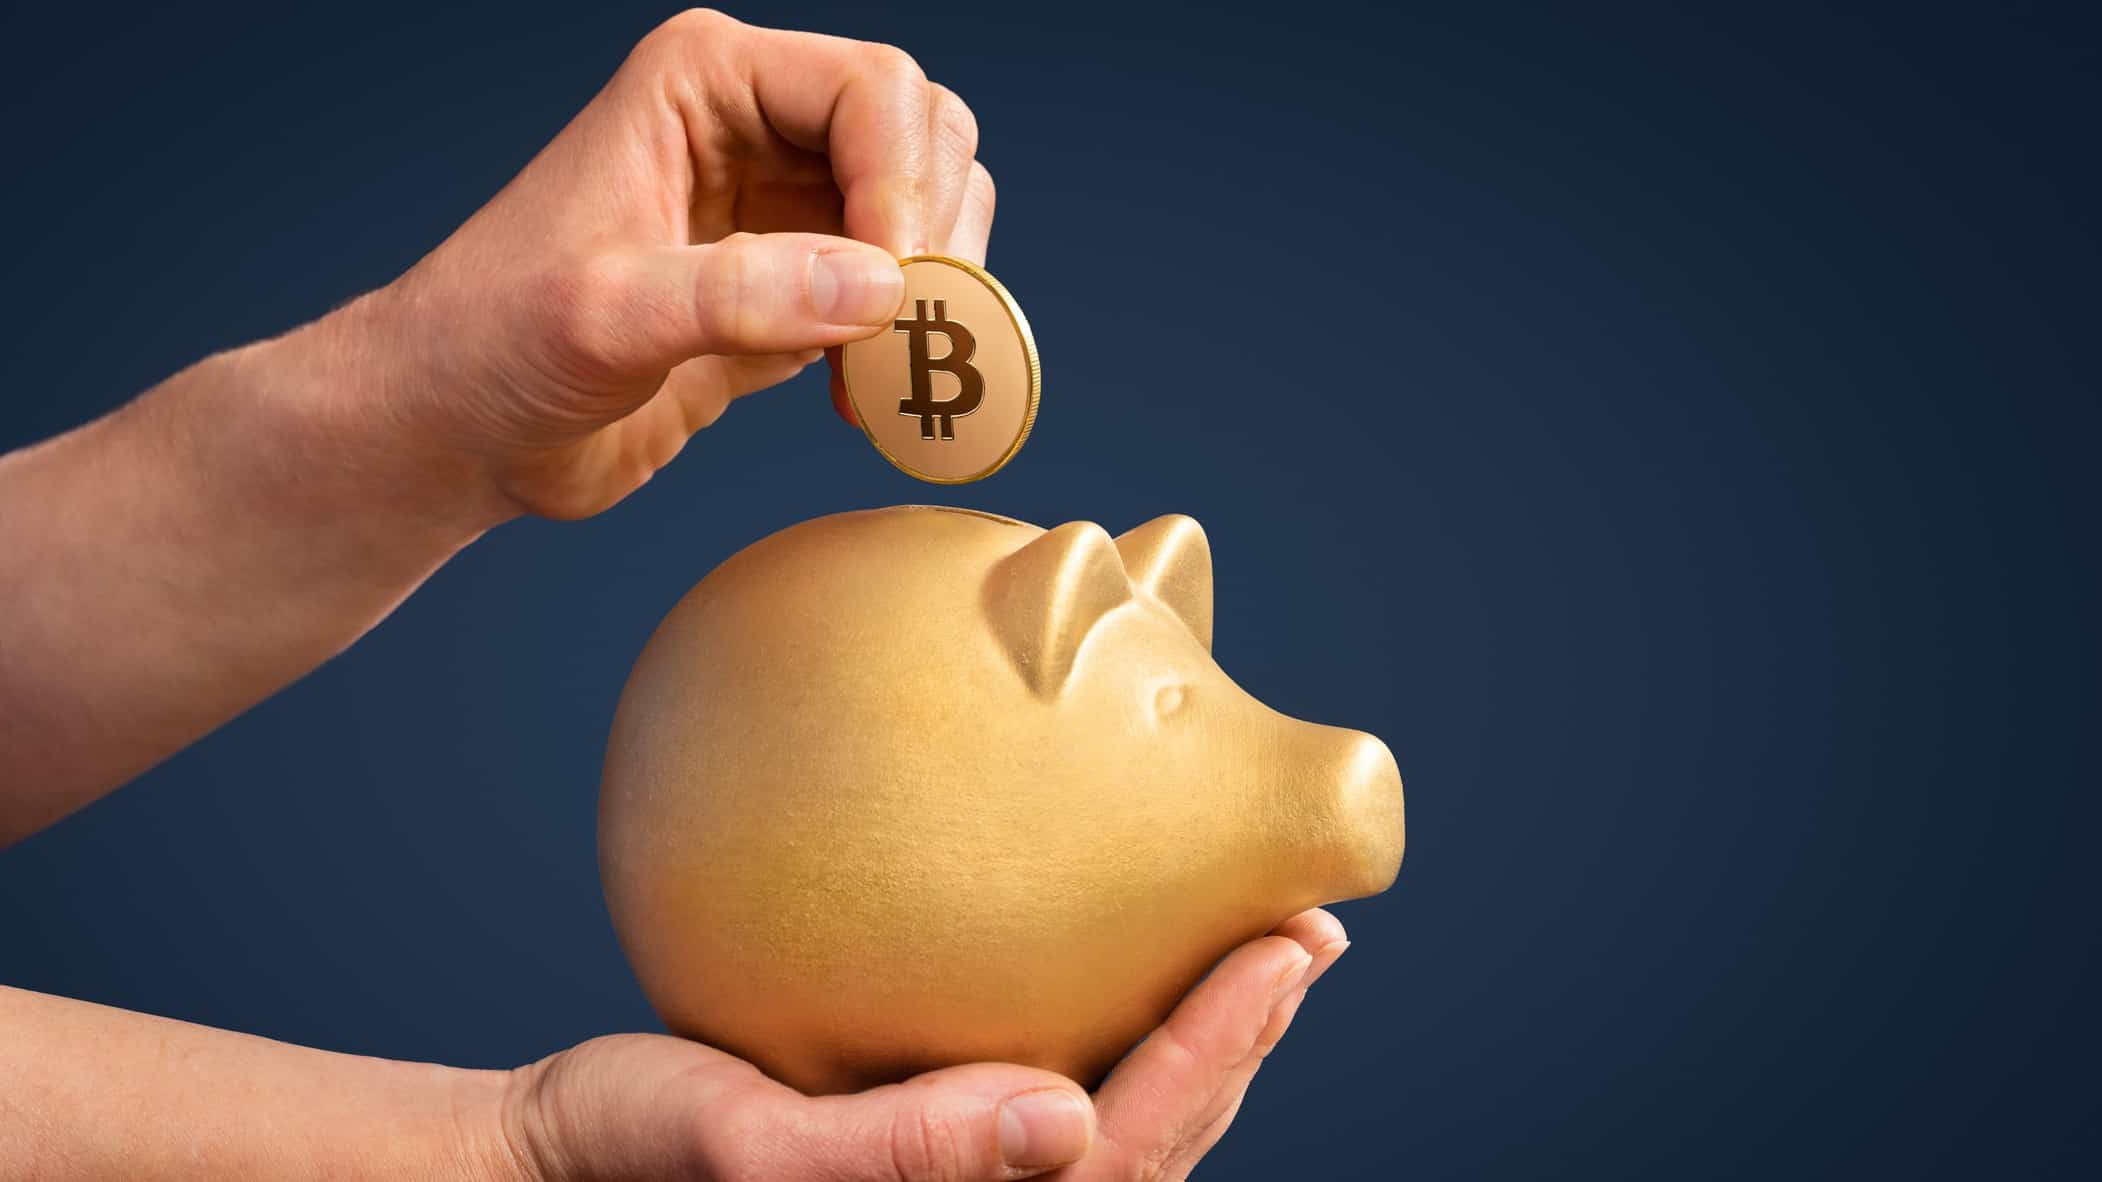 asx share price reacting to bitcoin represented by hand placing bitcoin in gold piggy bank